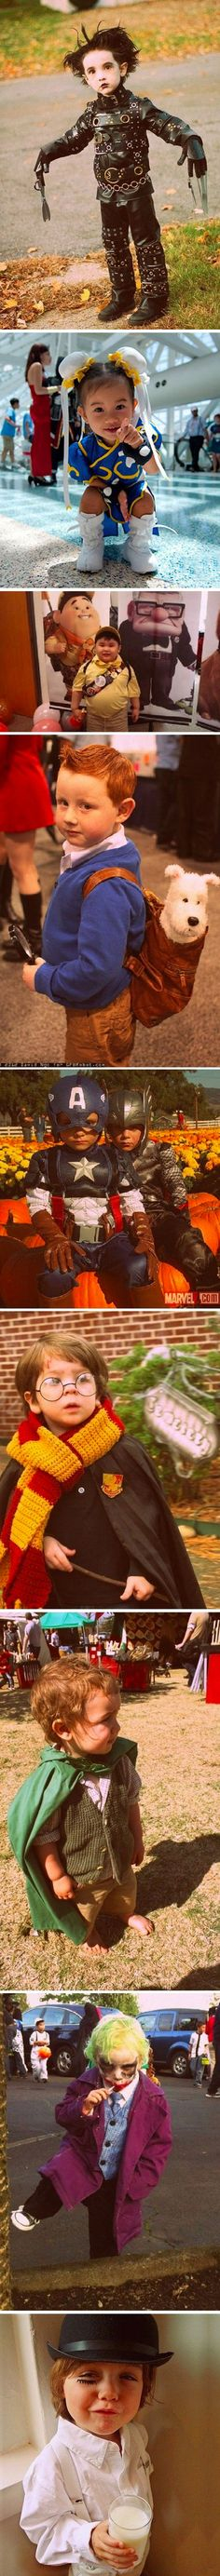 Parenting, you are doing it very right.